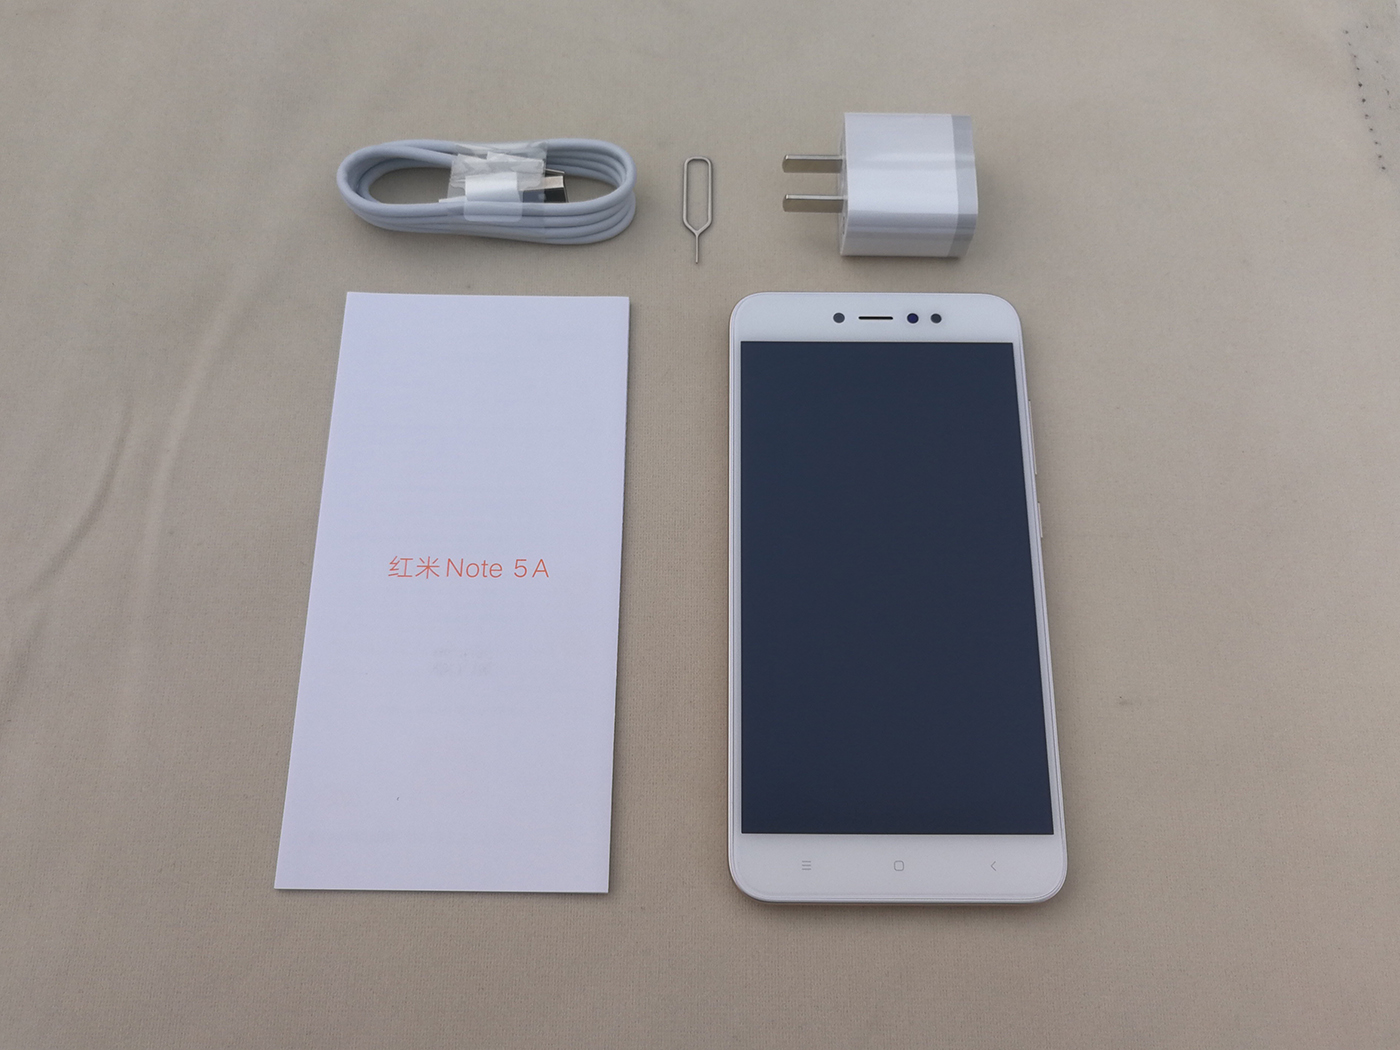 To2ccom Blog Xiaomi Redmi Note 5a Real Life Images Unboxing 3 Pro Ram 2 16gb Gold The Details Of Being Photographed Colorgold Ram3gb Rom32gb